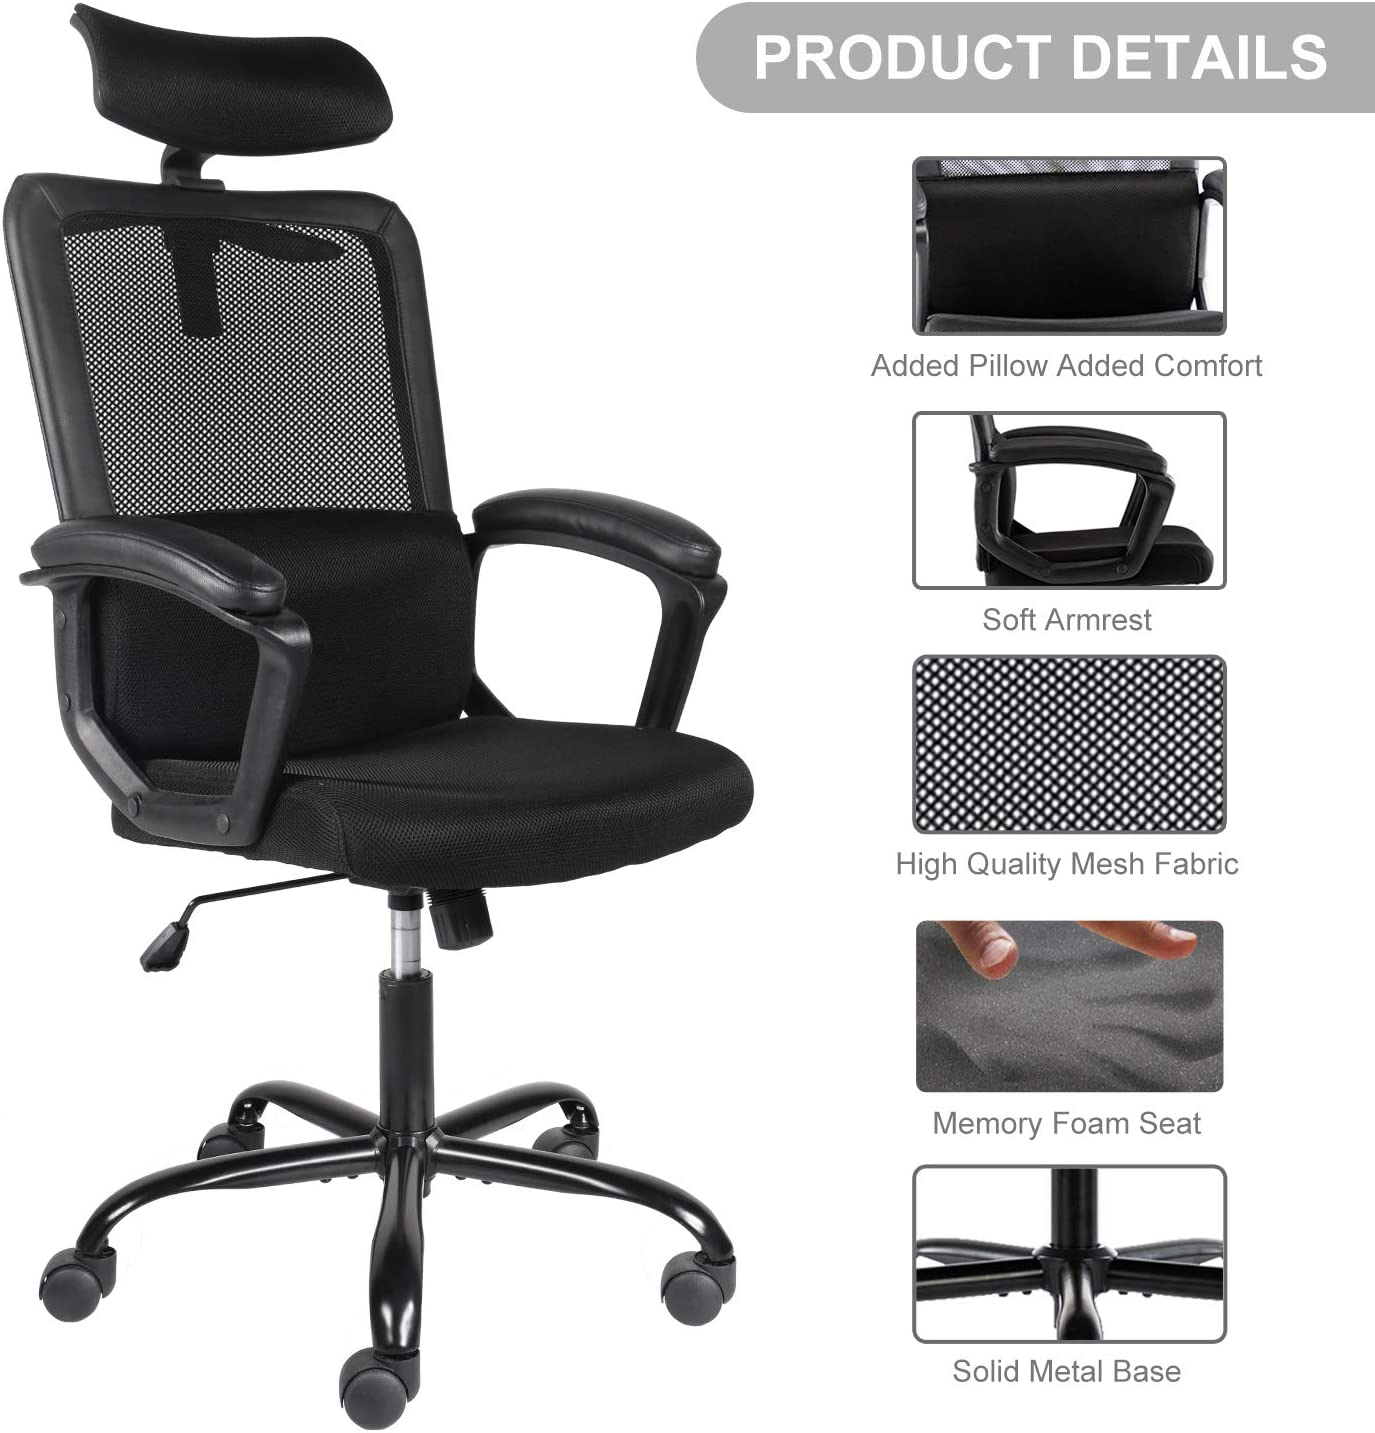 71U2svQEwOL. AC SL1500 - What Are The Best Office Chair For Lower Back Pain Under $300 - ChairPicks